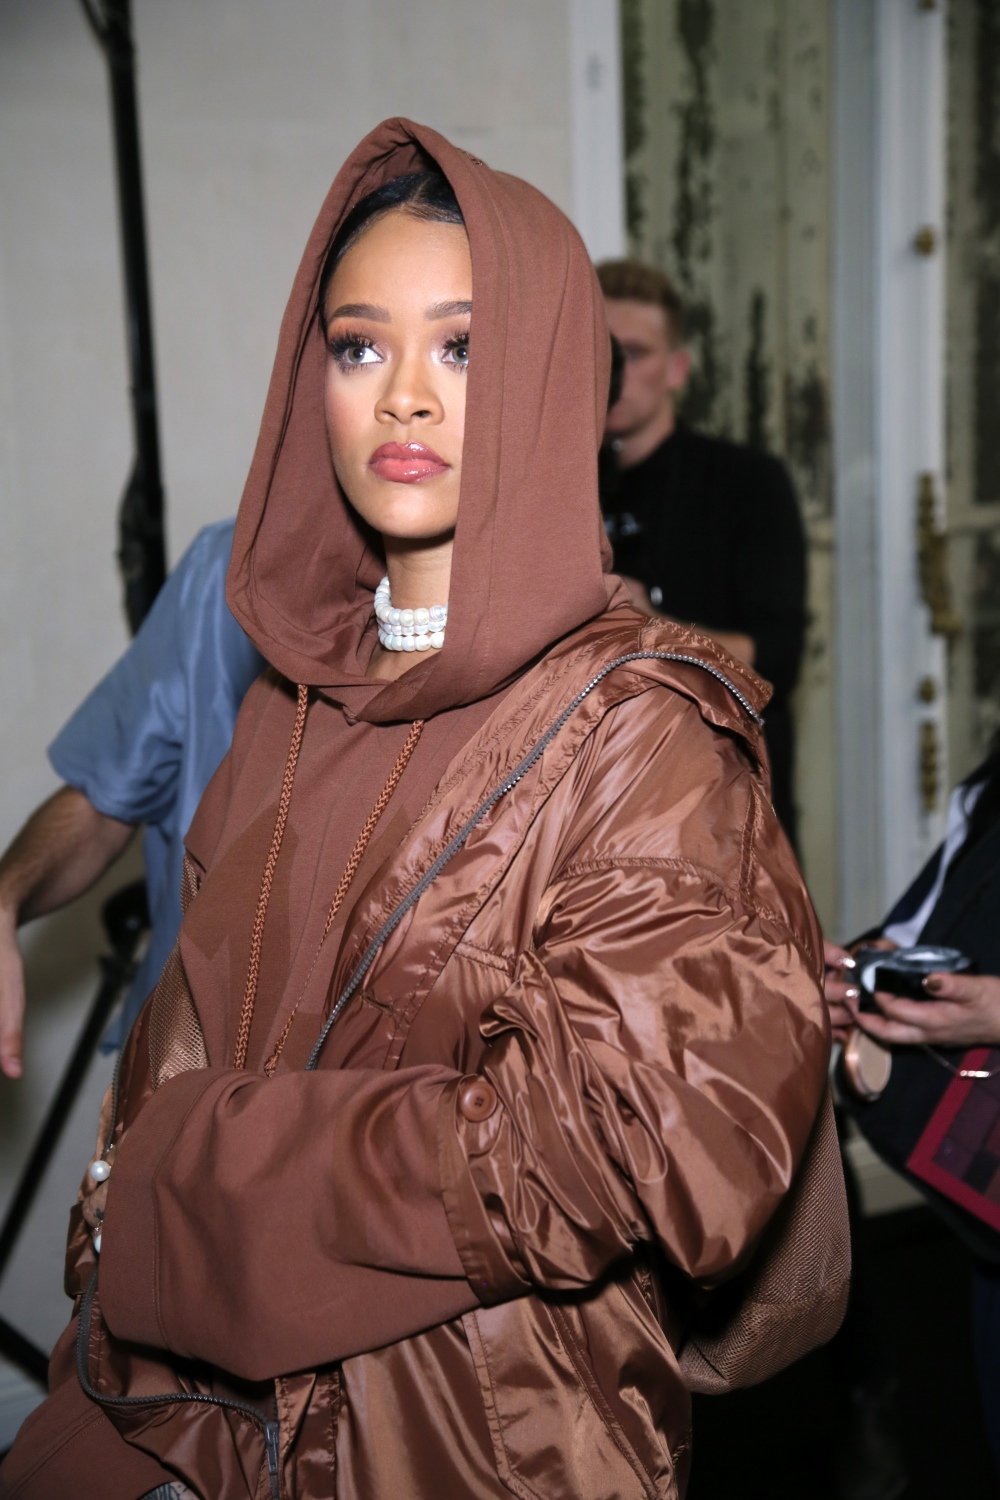 PARIS, FRANCE - SEPTEMBER 28: Rihanna is seen backstage during FENTY x PUMA by Rihanna at Hotel Salomon de Rothschild on September 28, 2016 in Paris, France. (Photo by Victor Boyko/Getty Images for Fenty x Puma)